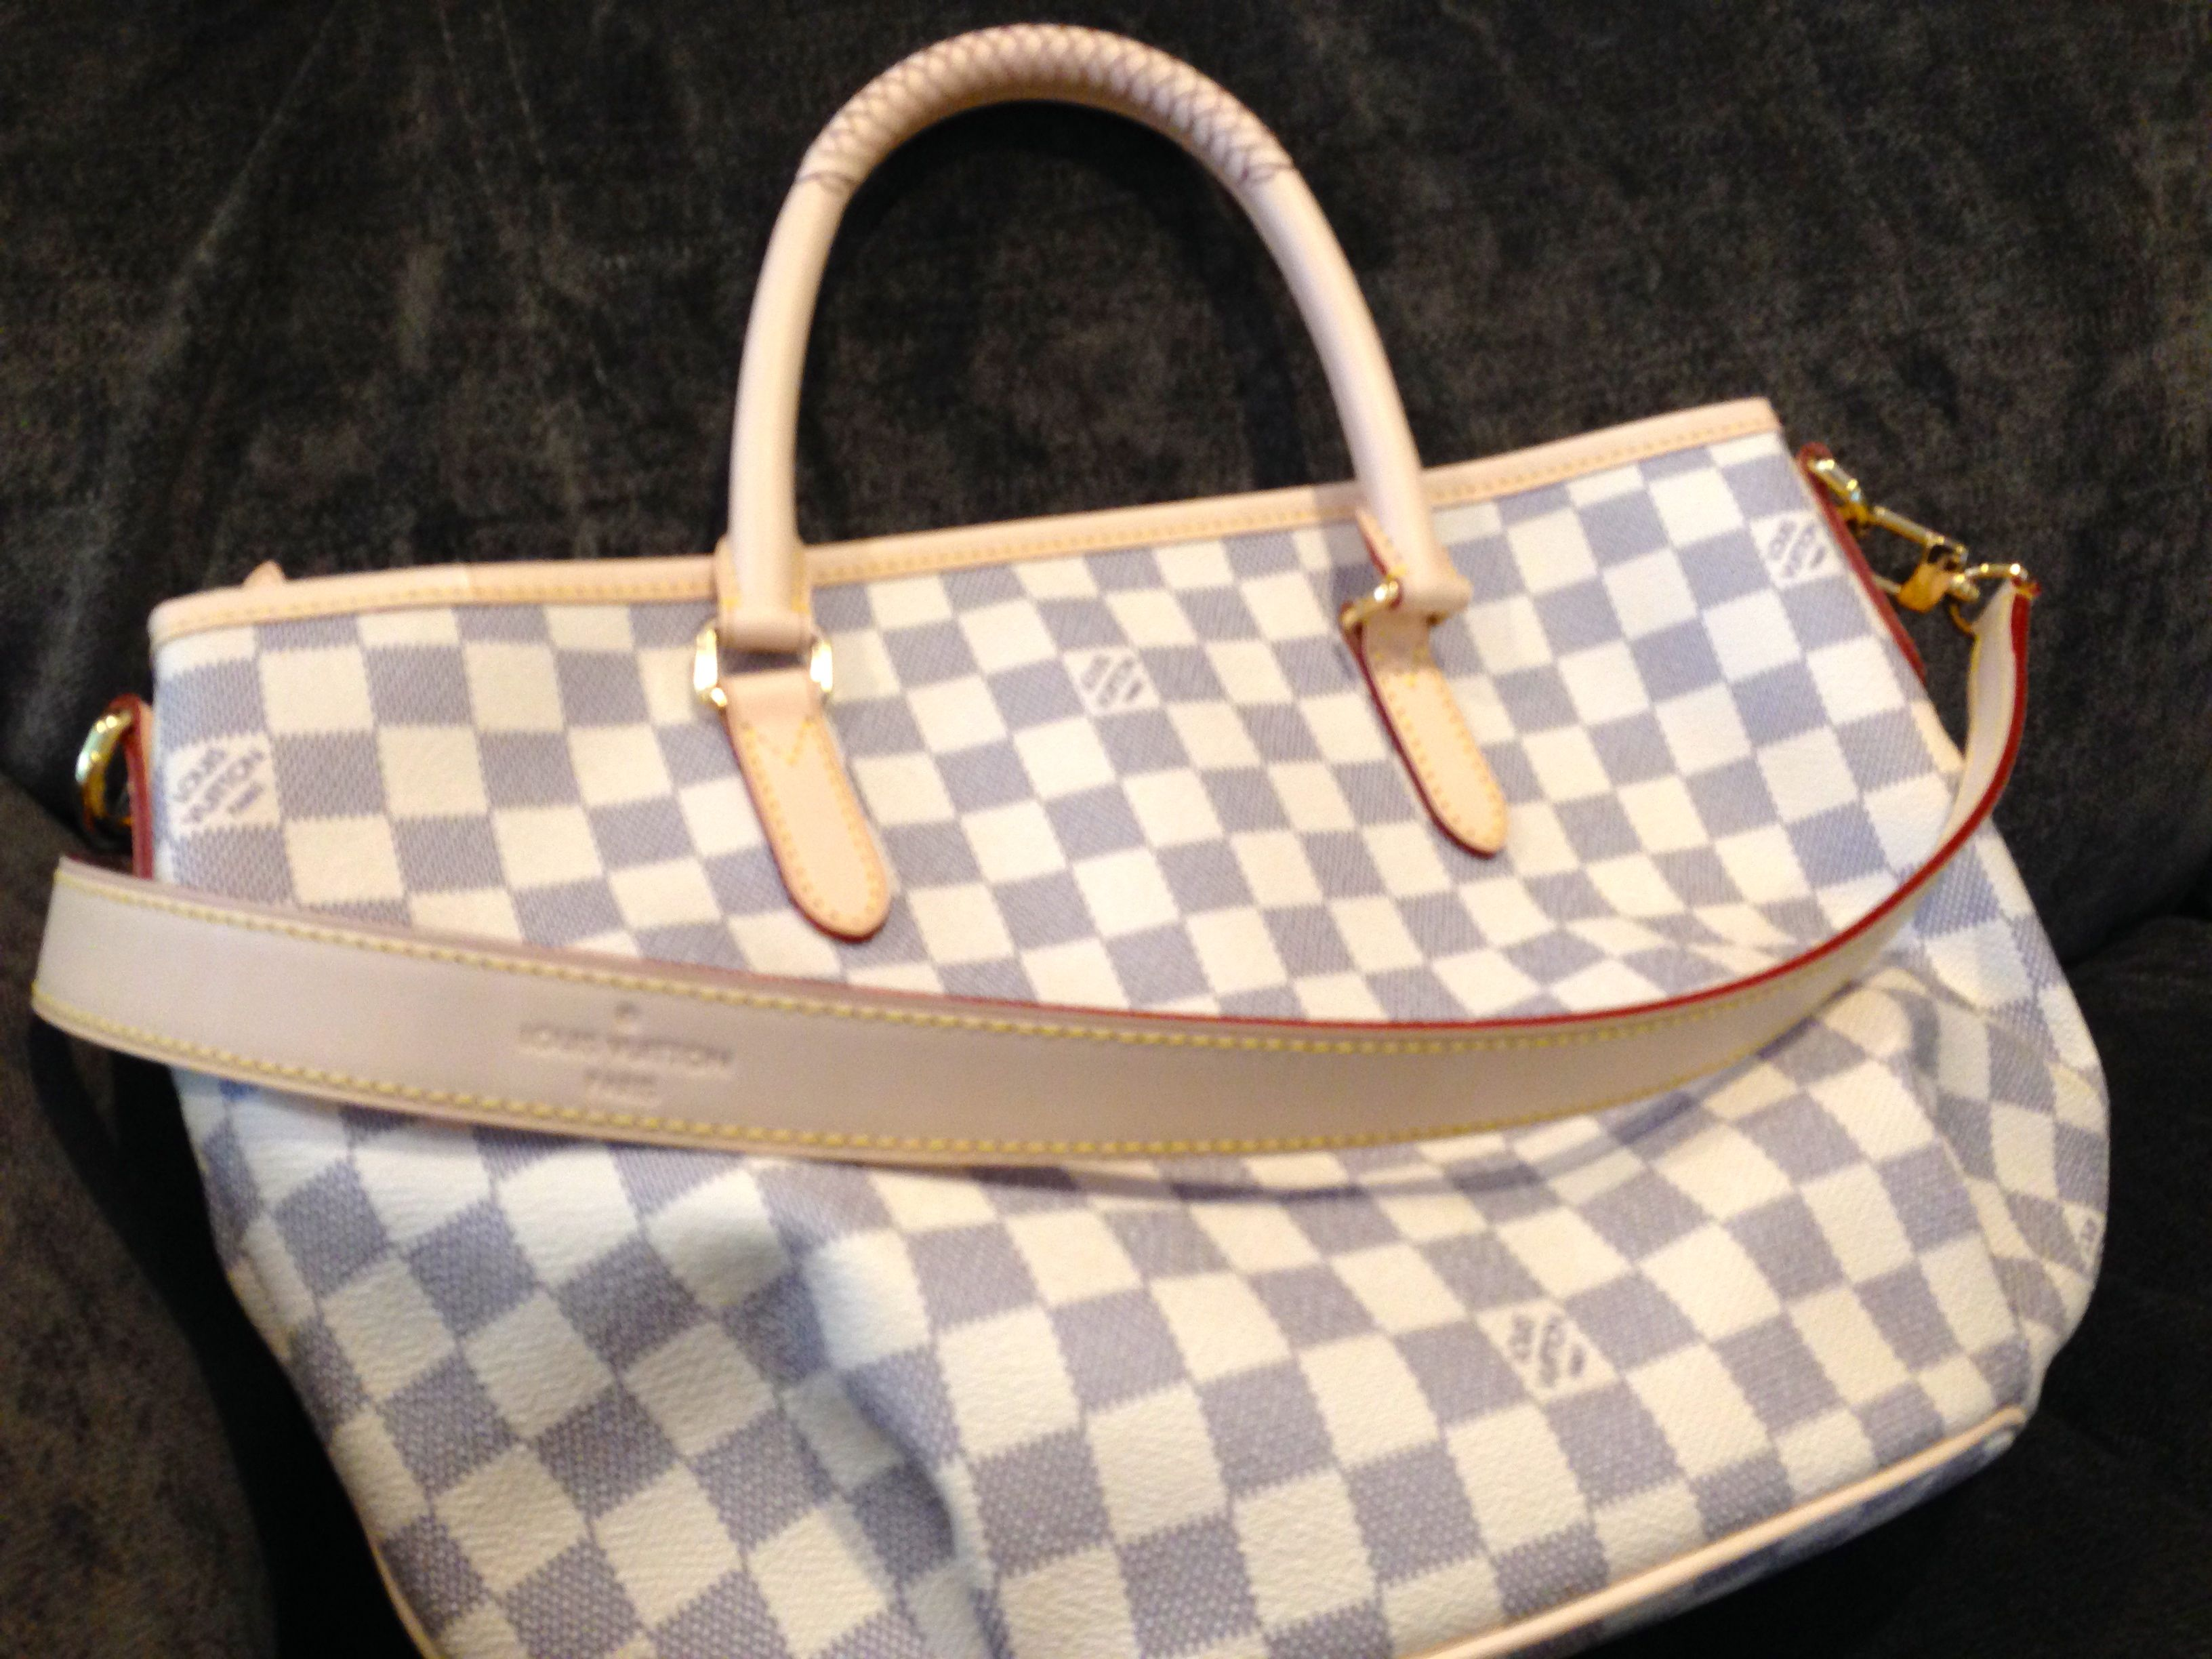 Louis Vuitton Riviera PM in Damier Azur. New for Spring 2014. My brand new  bag. Love it!  -) bf70c79b59e3a